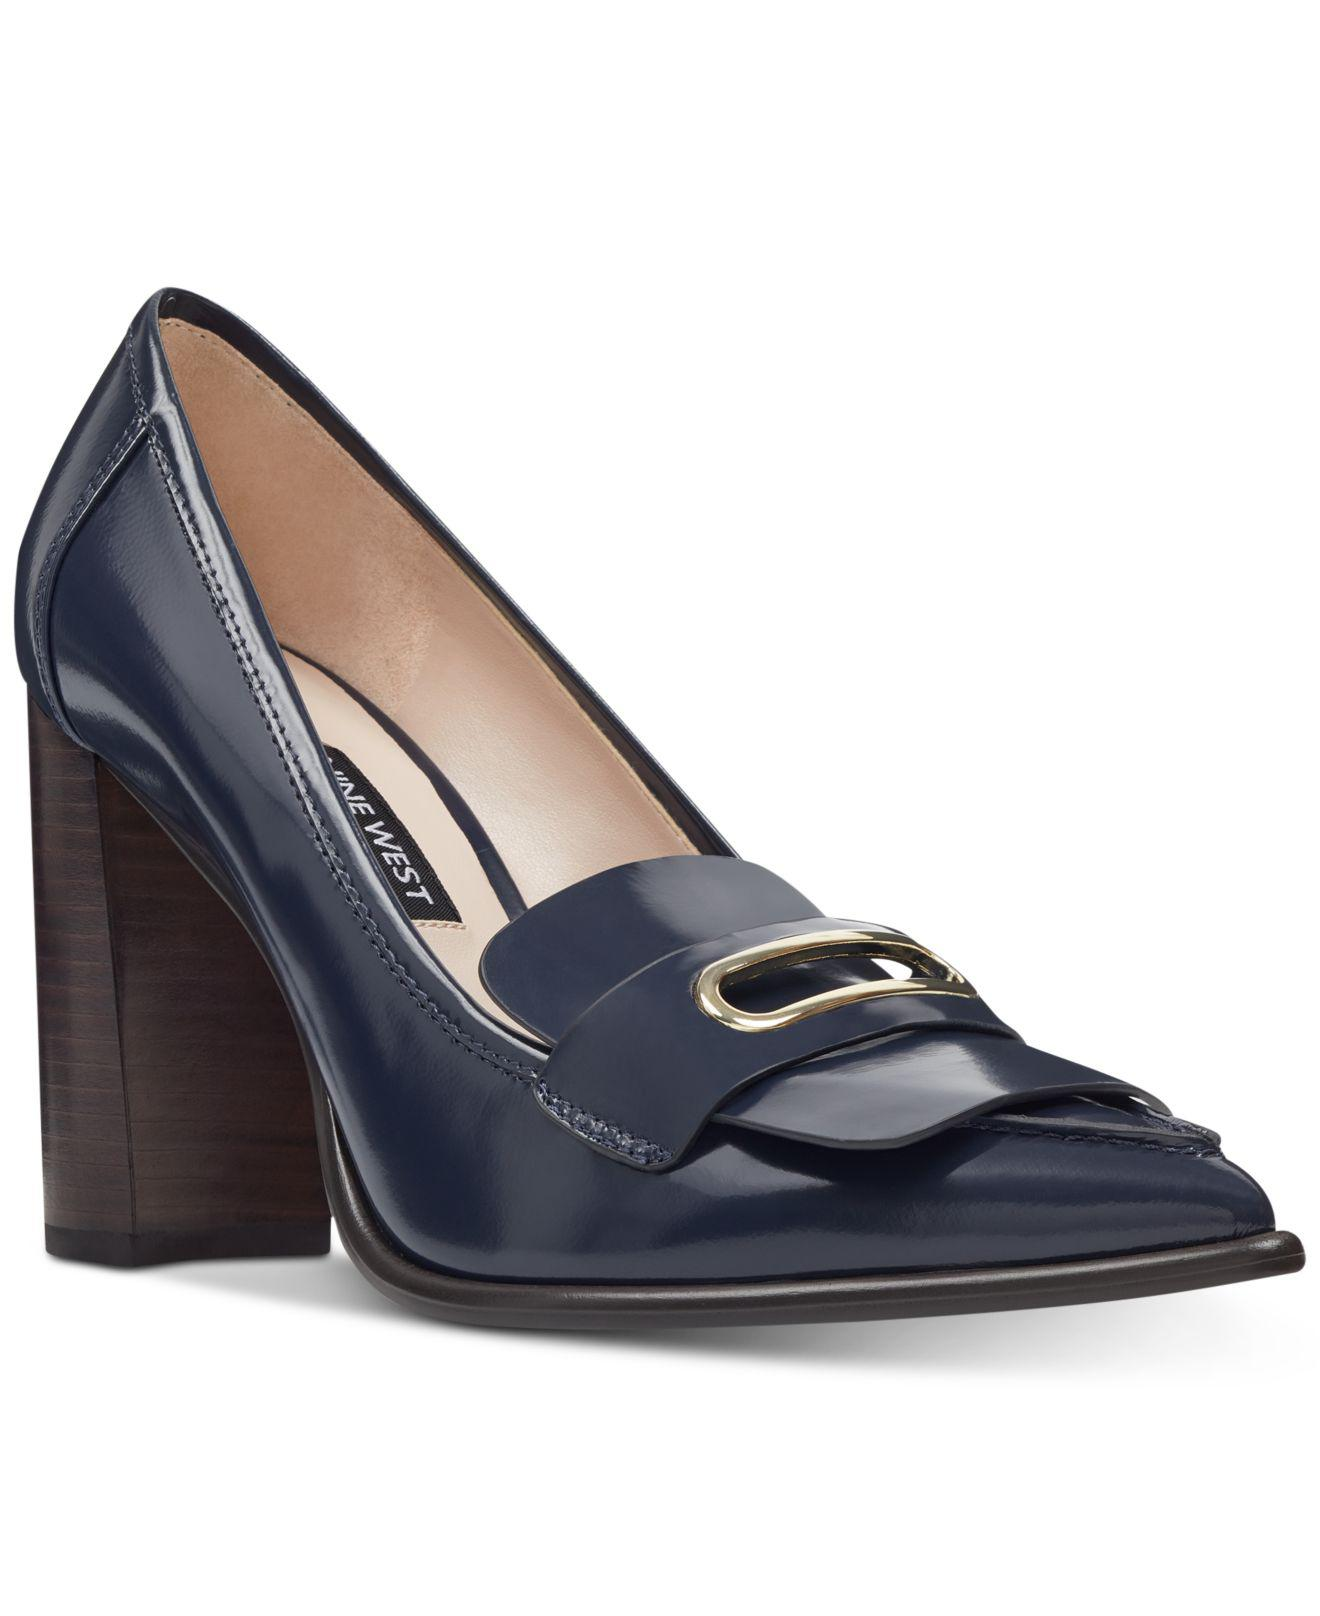 f1852eb4c94 Lyst - Nine West Zoro Tailored Pumps in Blue - Save 44%